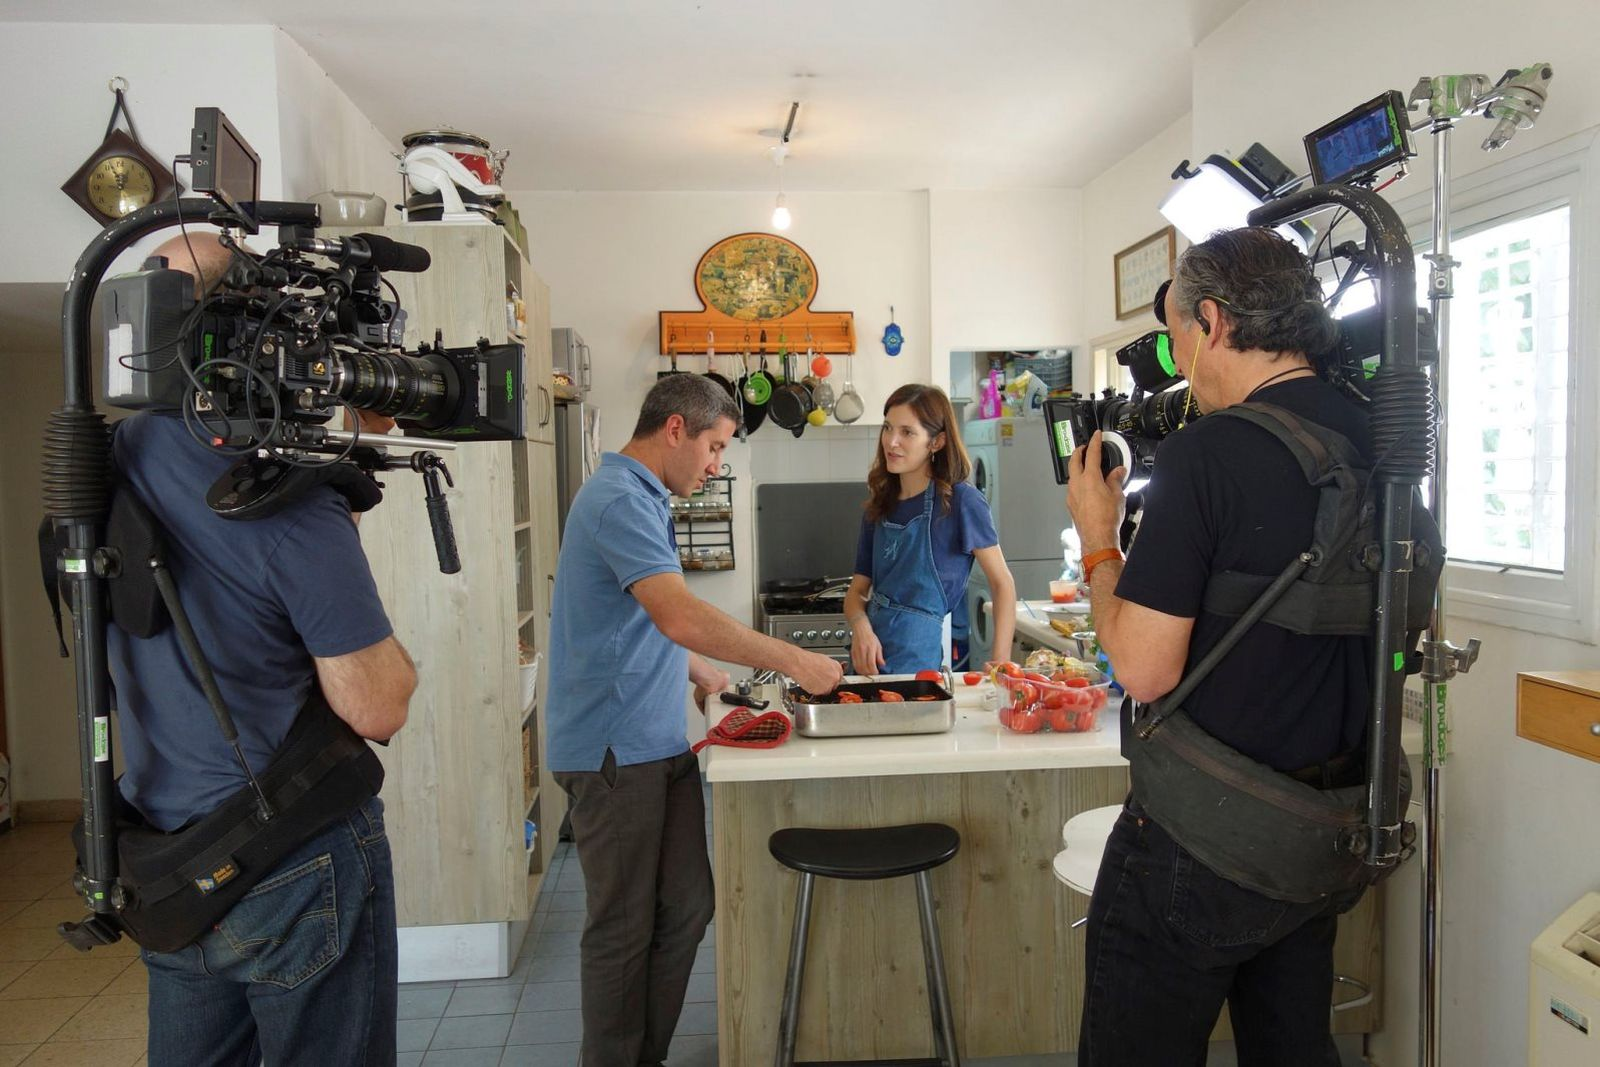 new film set to reveal israel's biggest secret: its food | israel21c